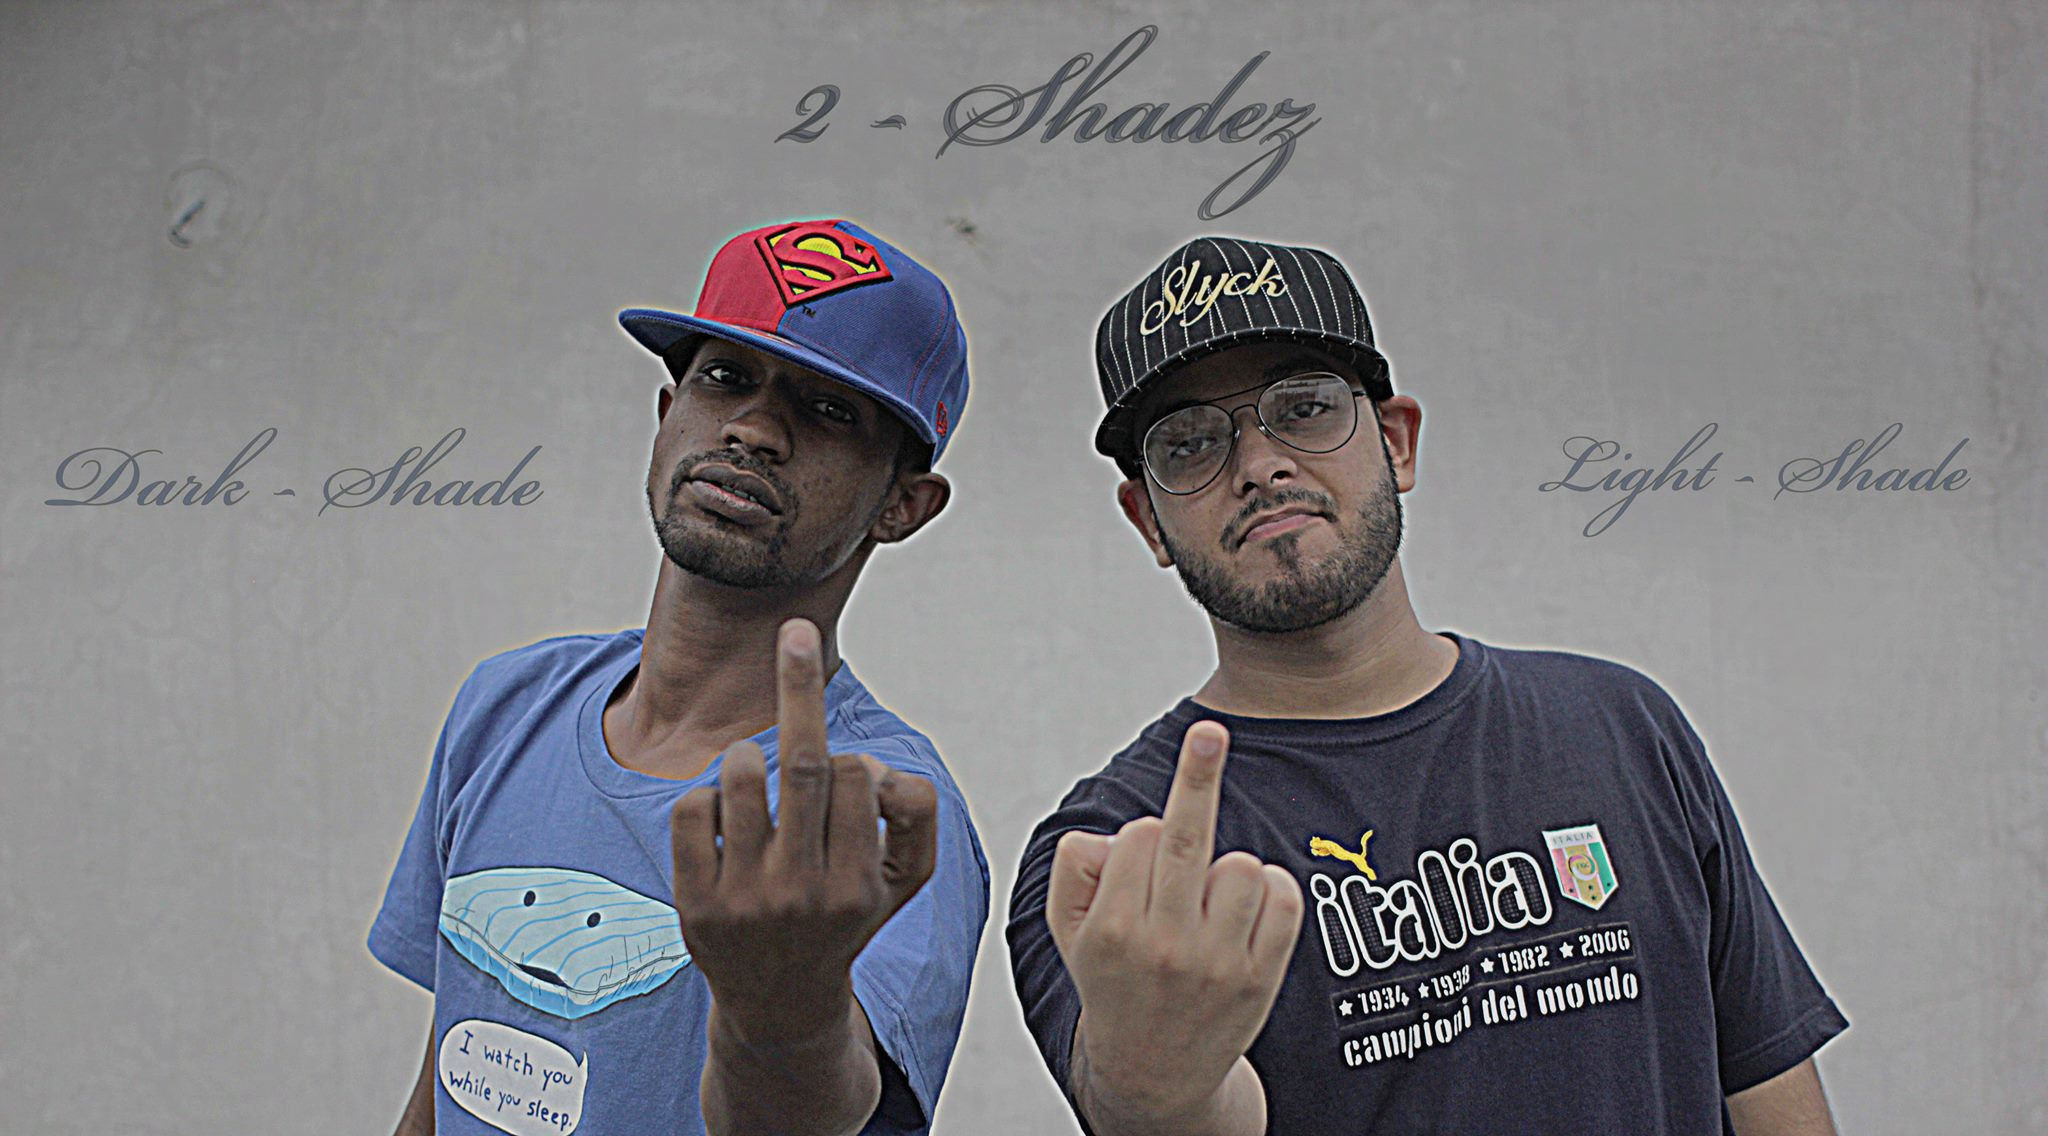 2 shadez slyck and zan underground crew